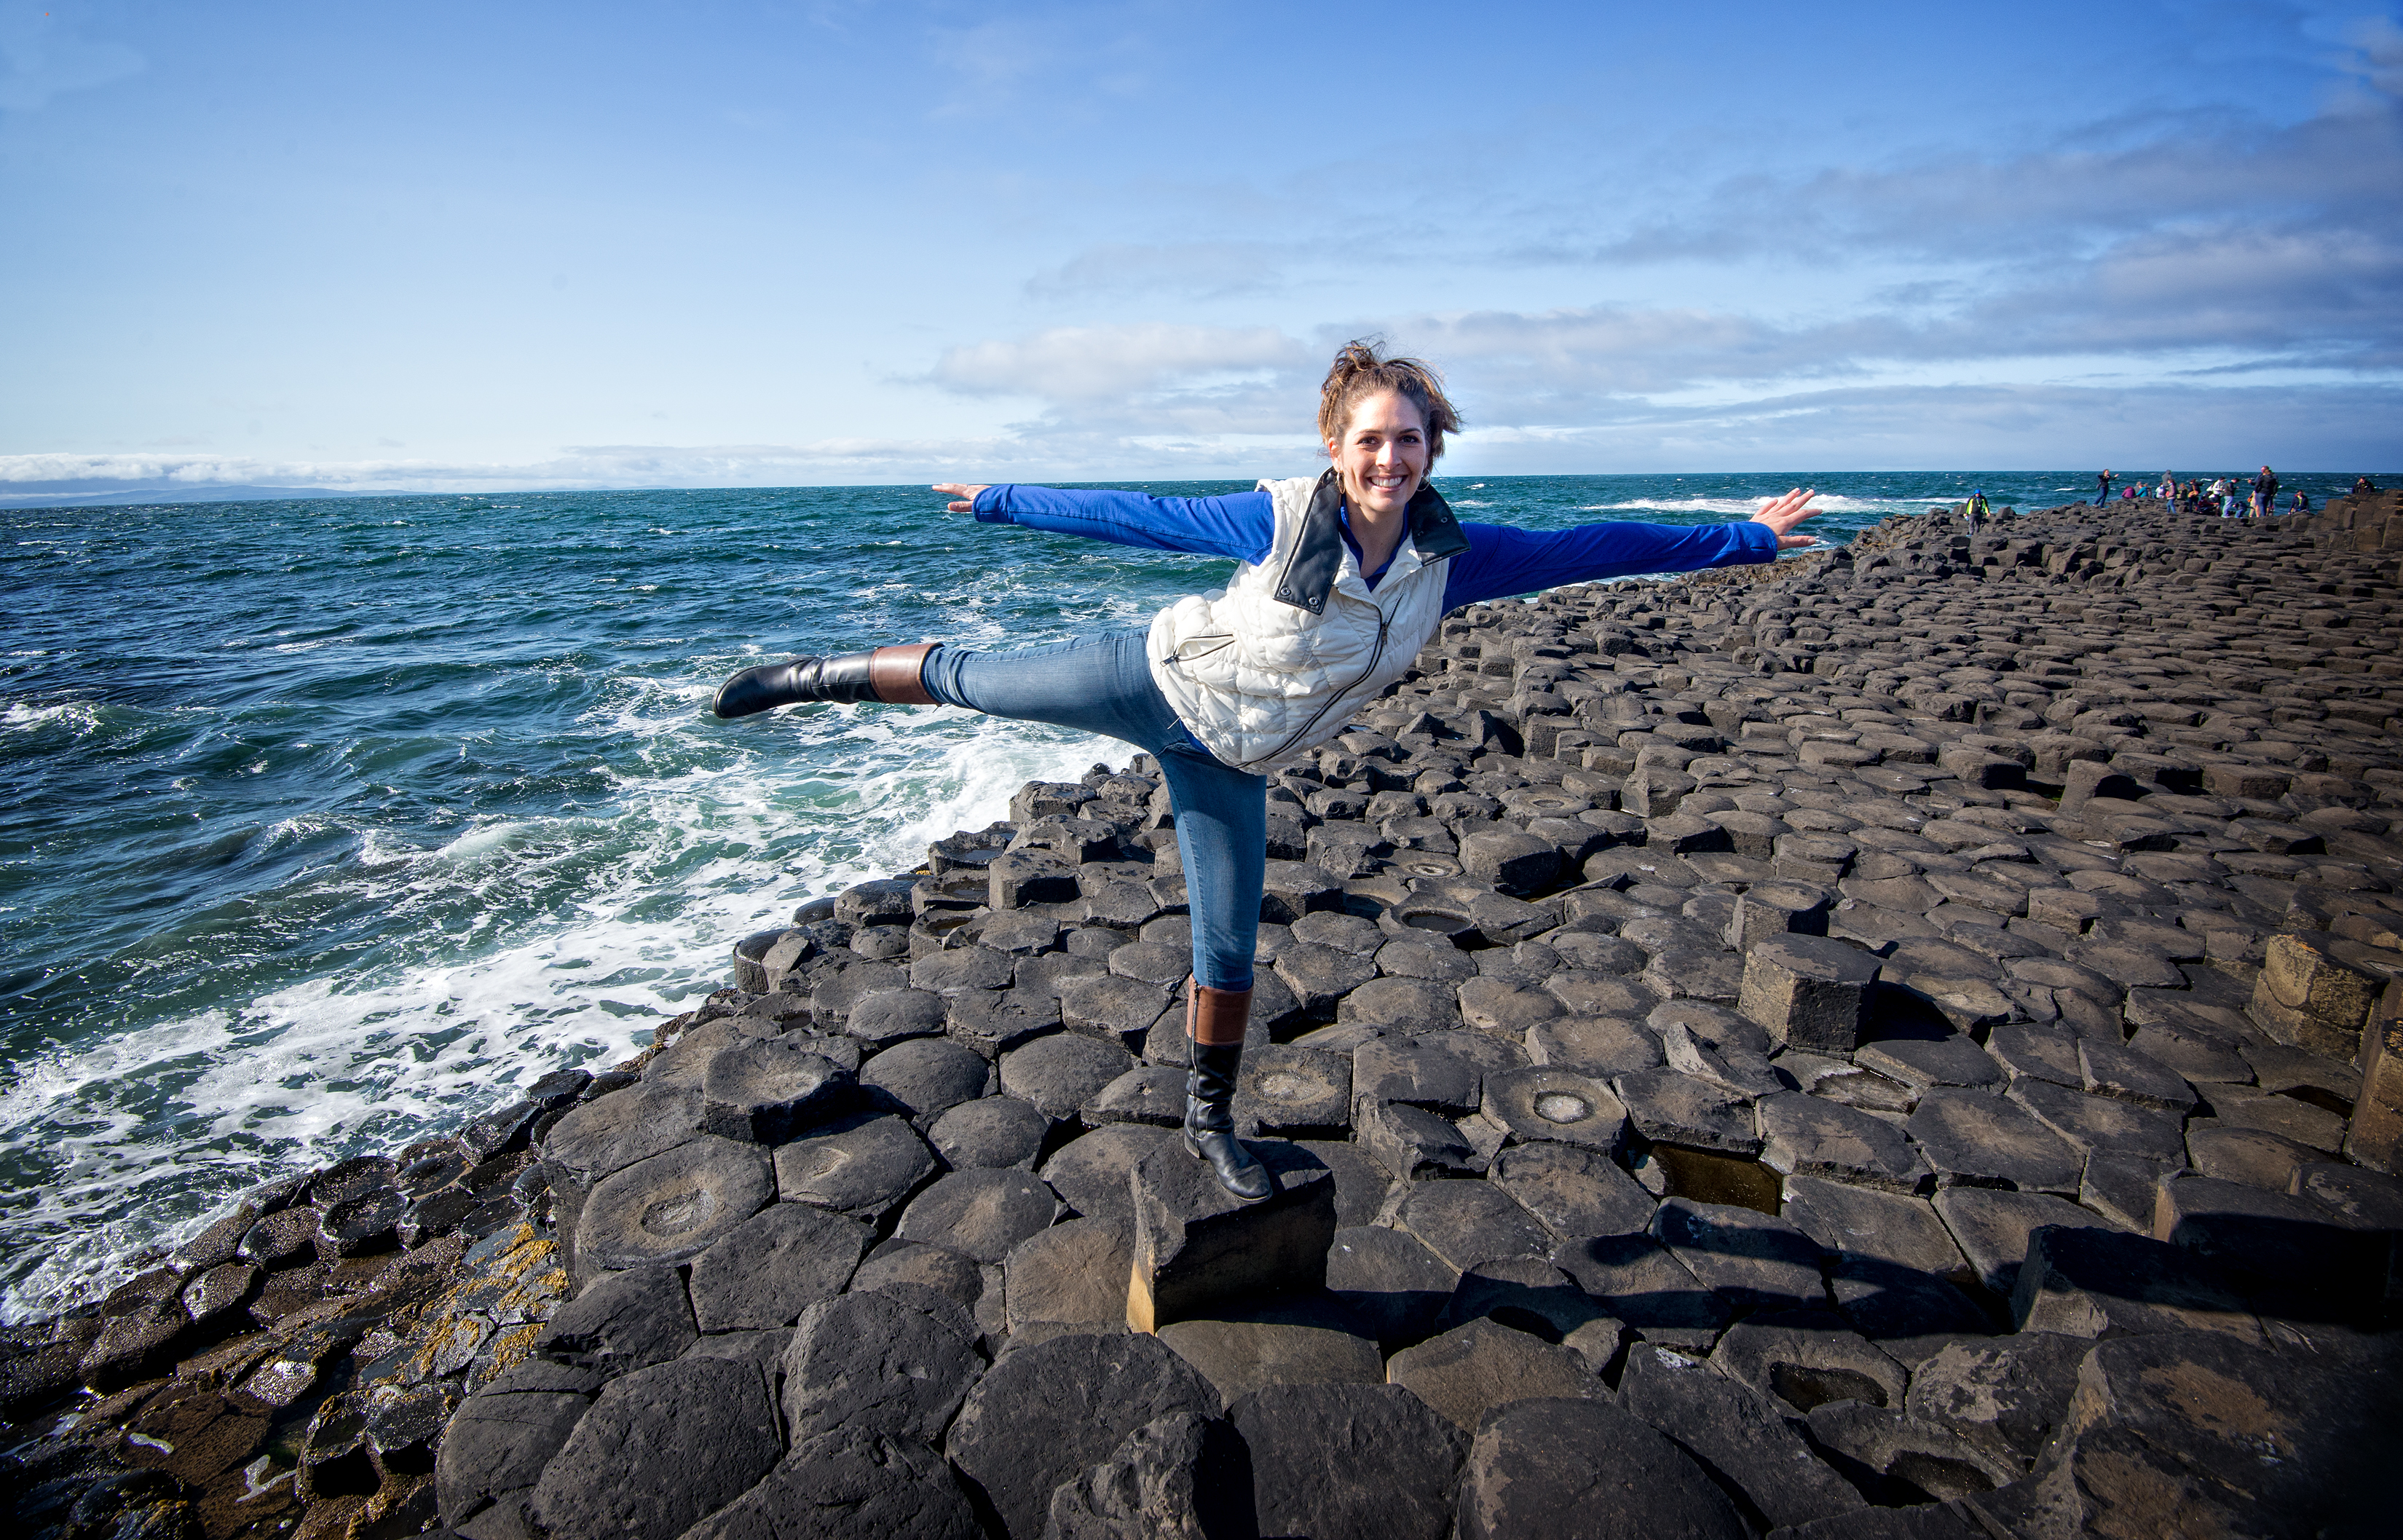 Climbing the Giants Causeway in Northern Ireland should be on every travel bucket list.